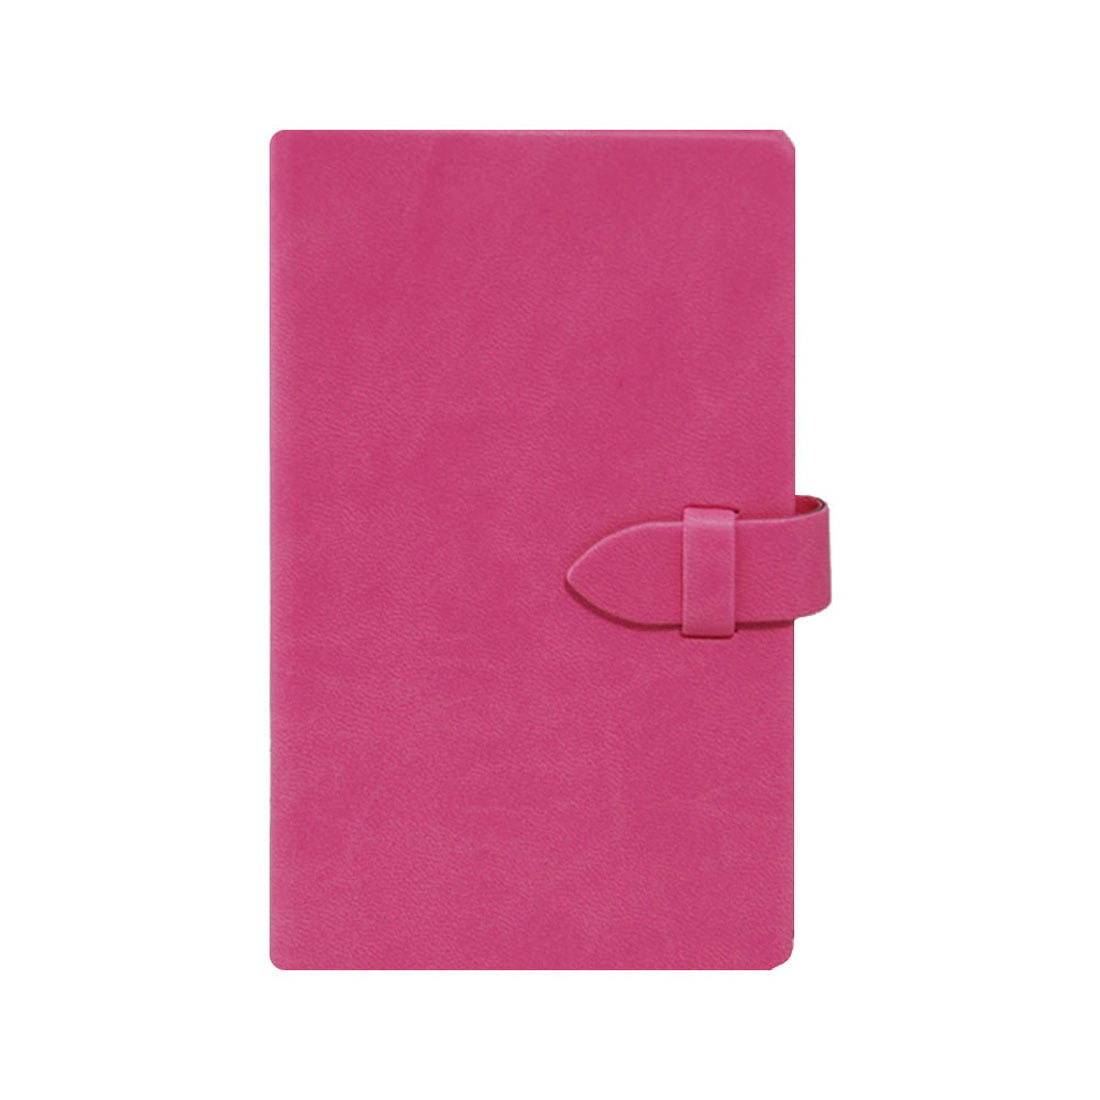 Medium notebook in pink with cream pages, clasp closure